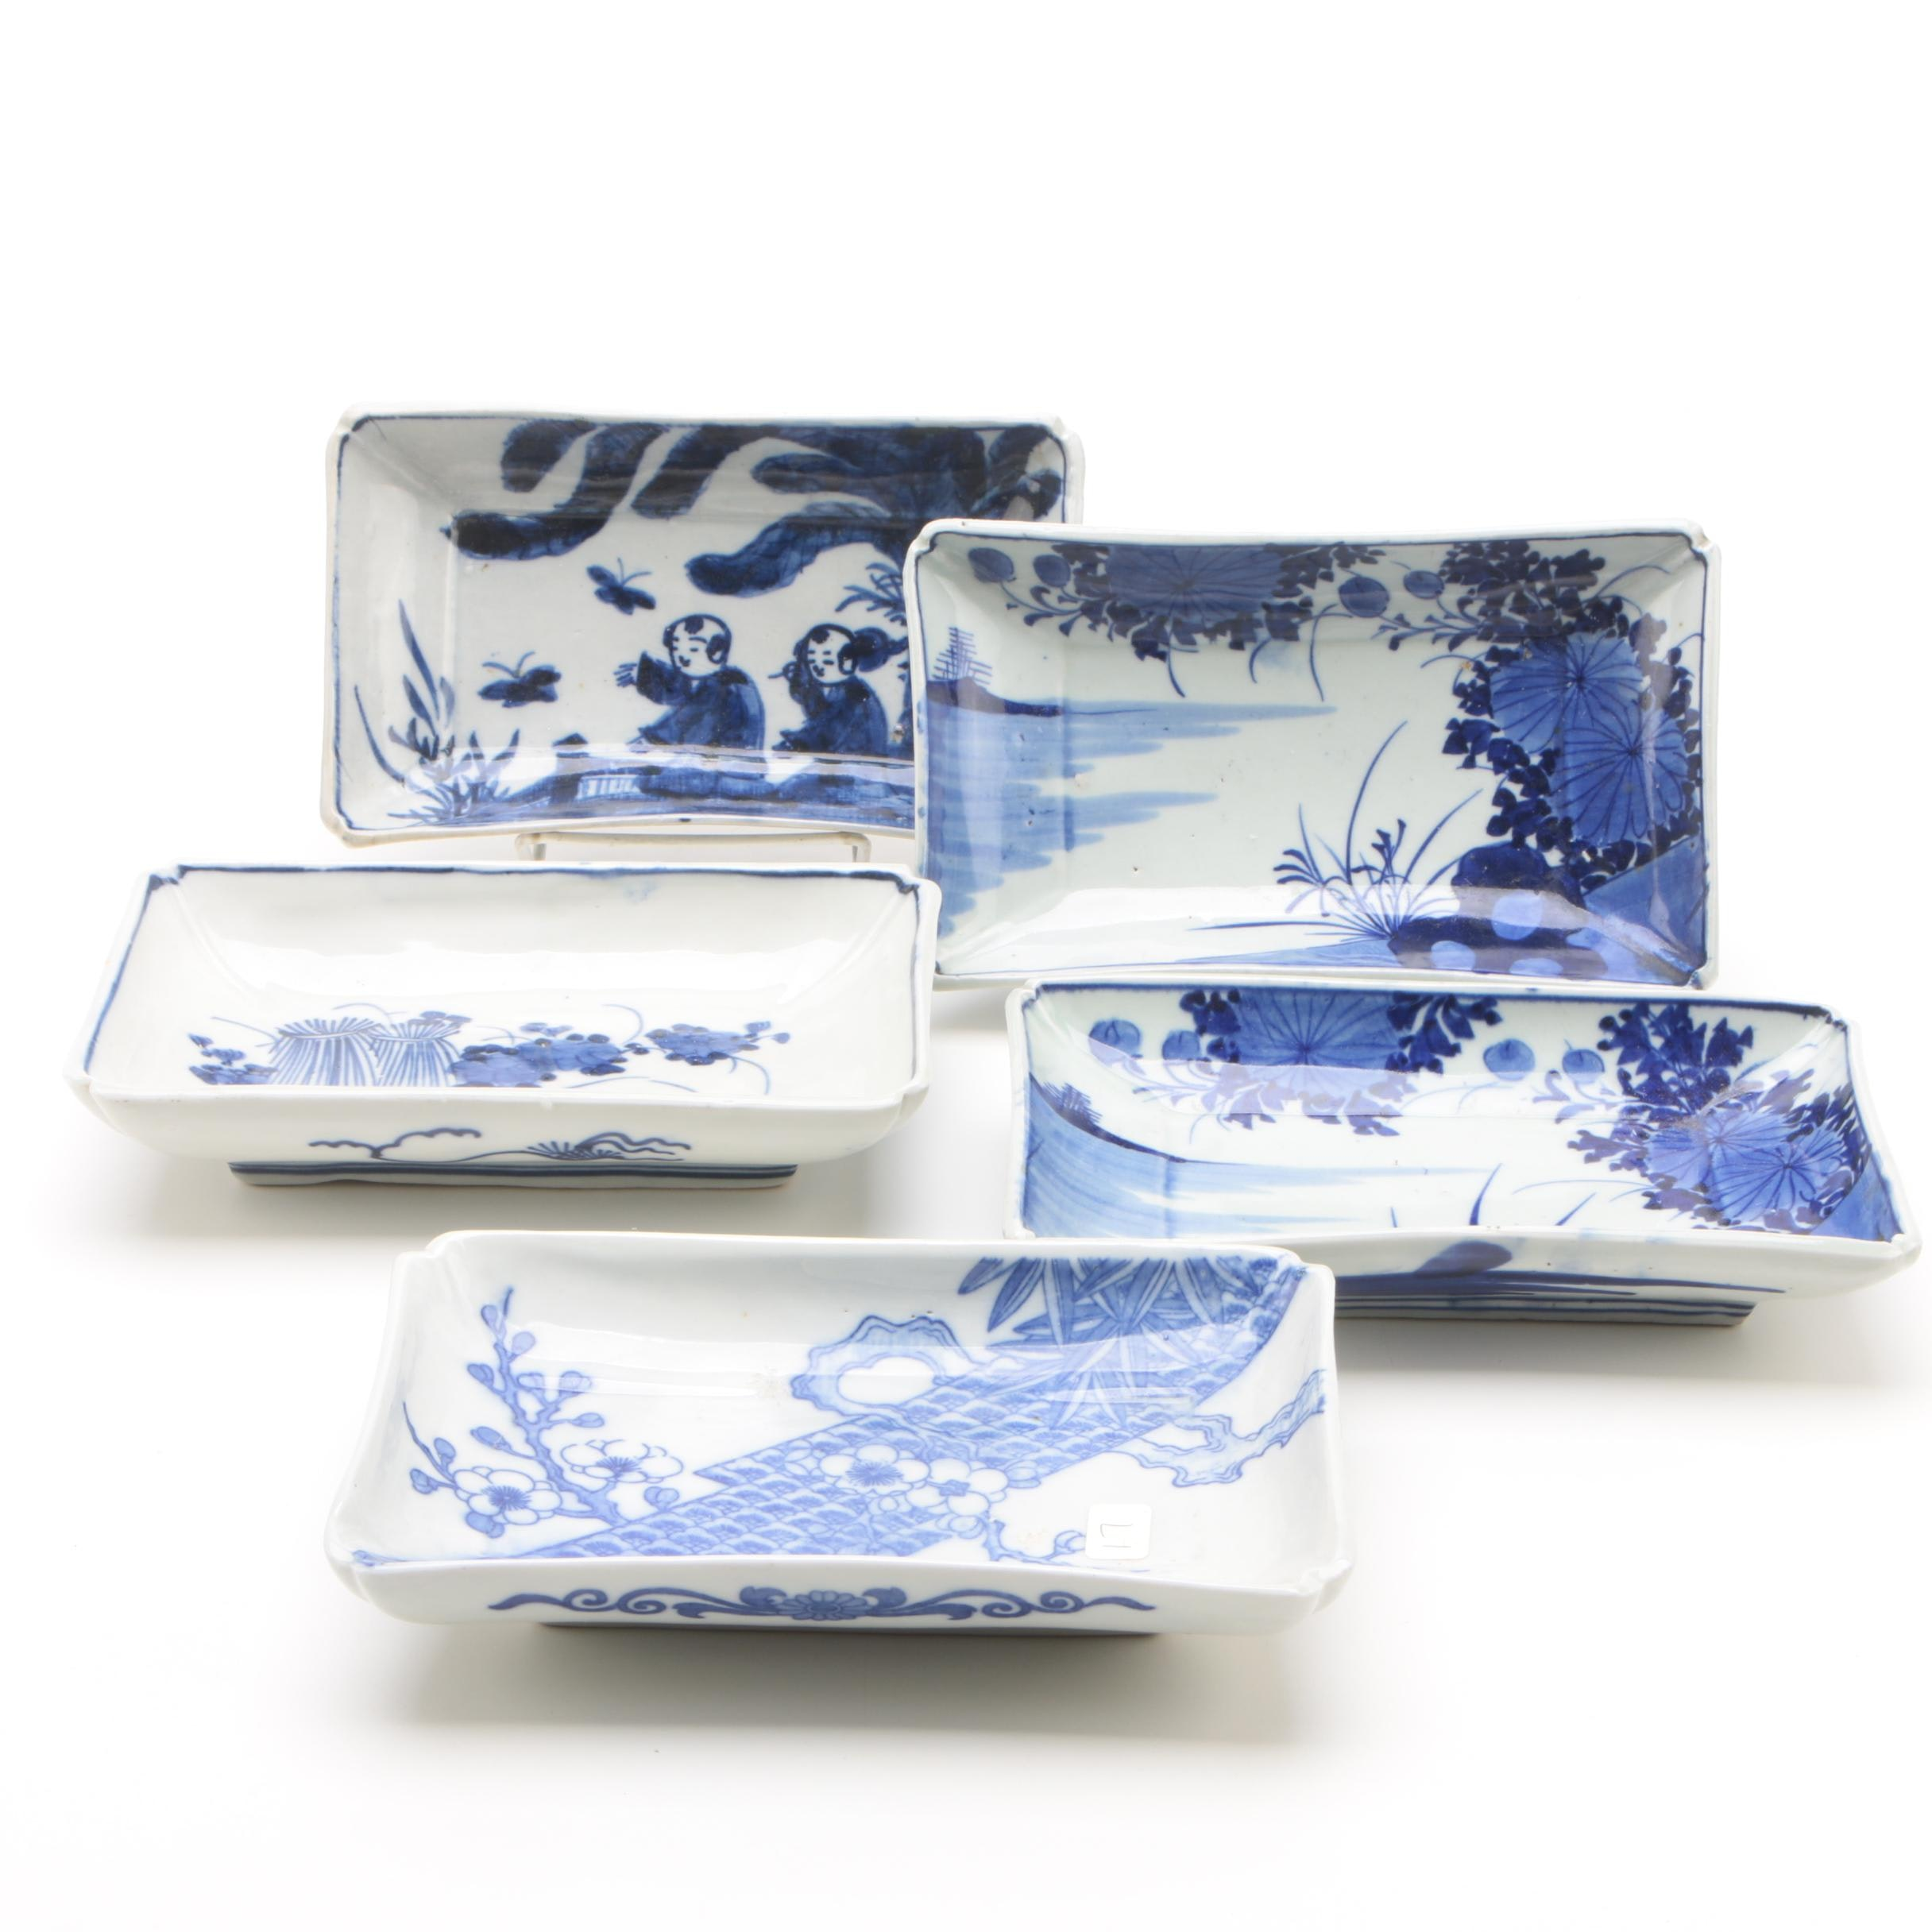 Chinese Export Blue and White Porcelain Serving Dishes